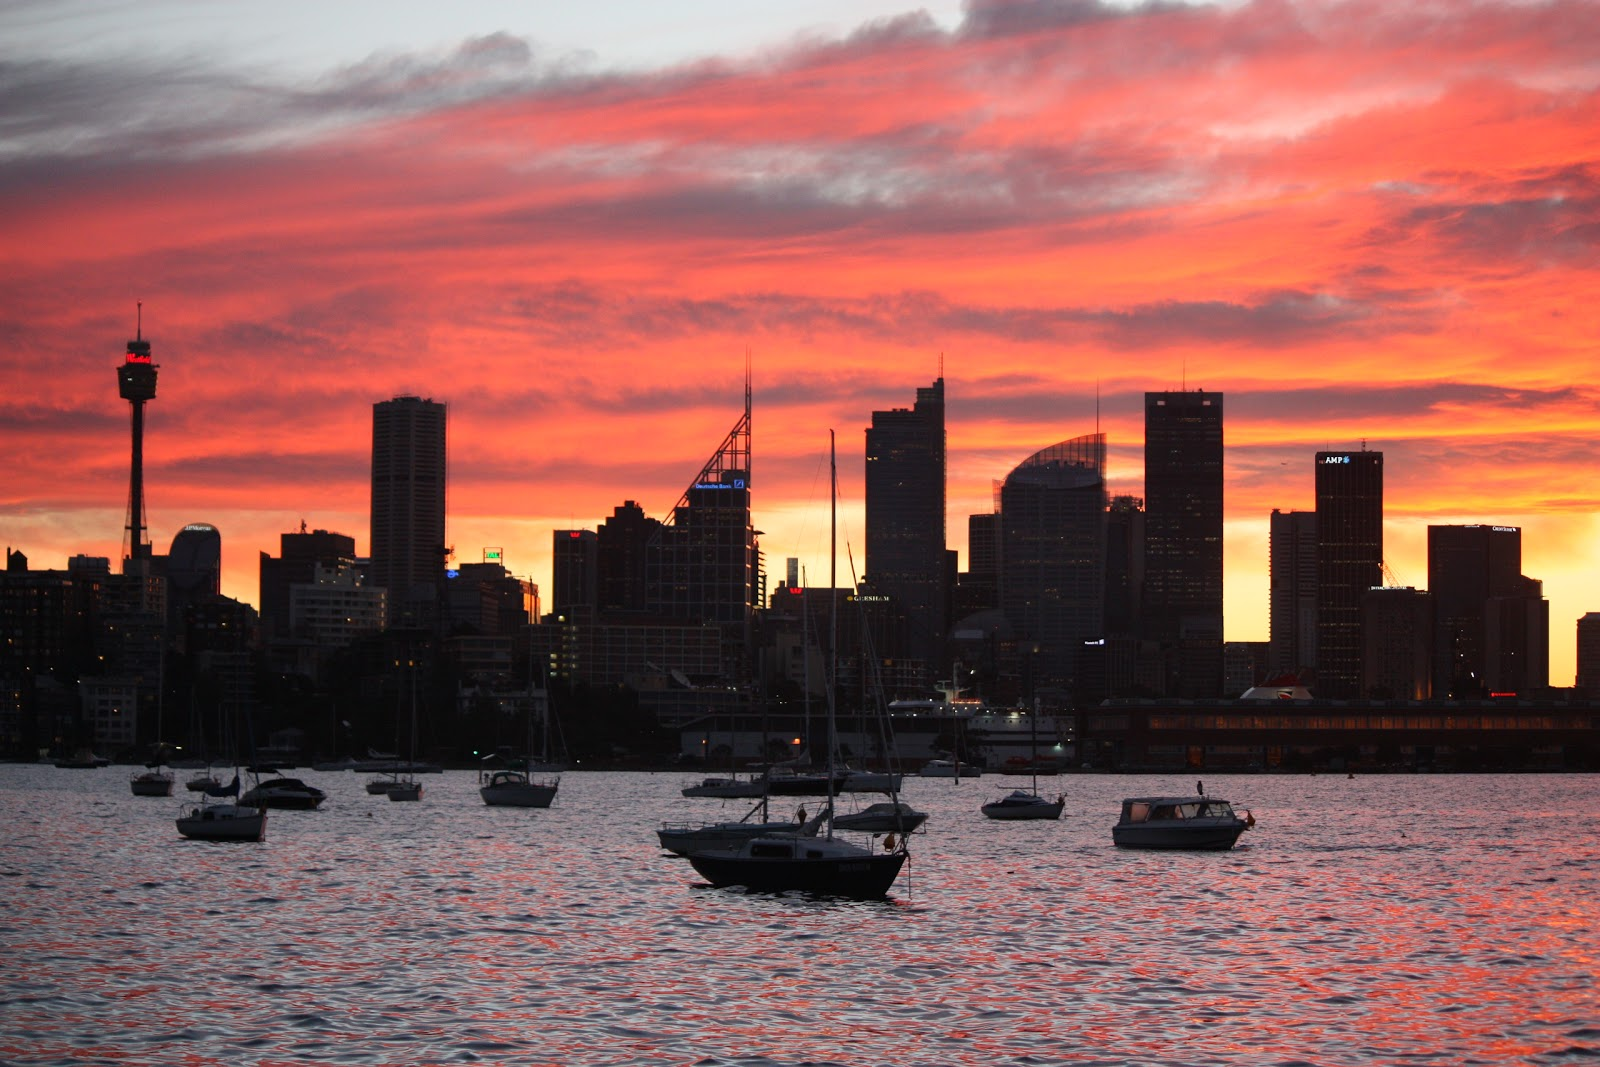 #C57C06 Sydney City And Suburbs: Rushcutters Bay Sydney Skyline Most Effective 9415 Aircon Regas Eastern Suburbs Sydney pictures with 1600x1067 px on helpvideos.info - Air Conditioners, Air Coolers and more